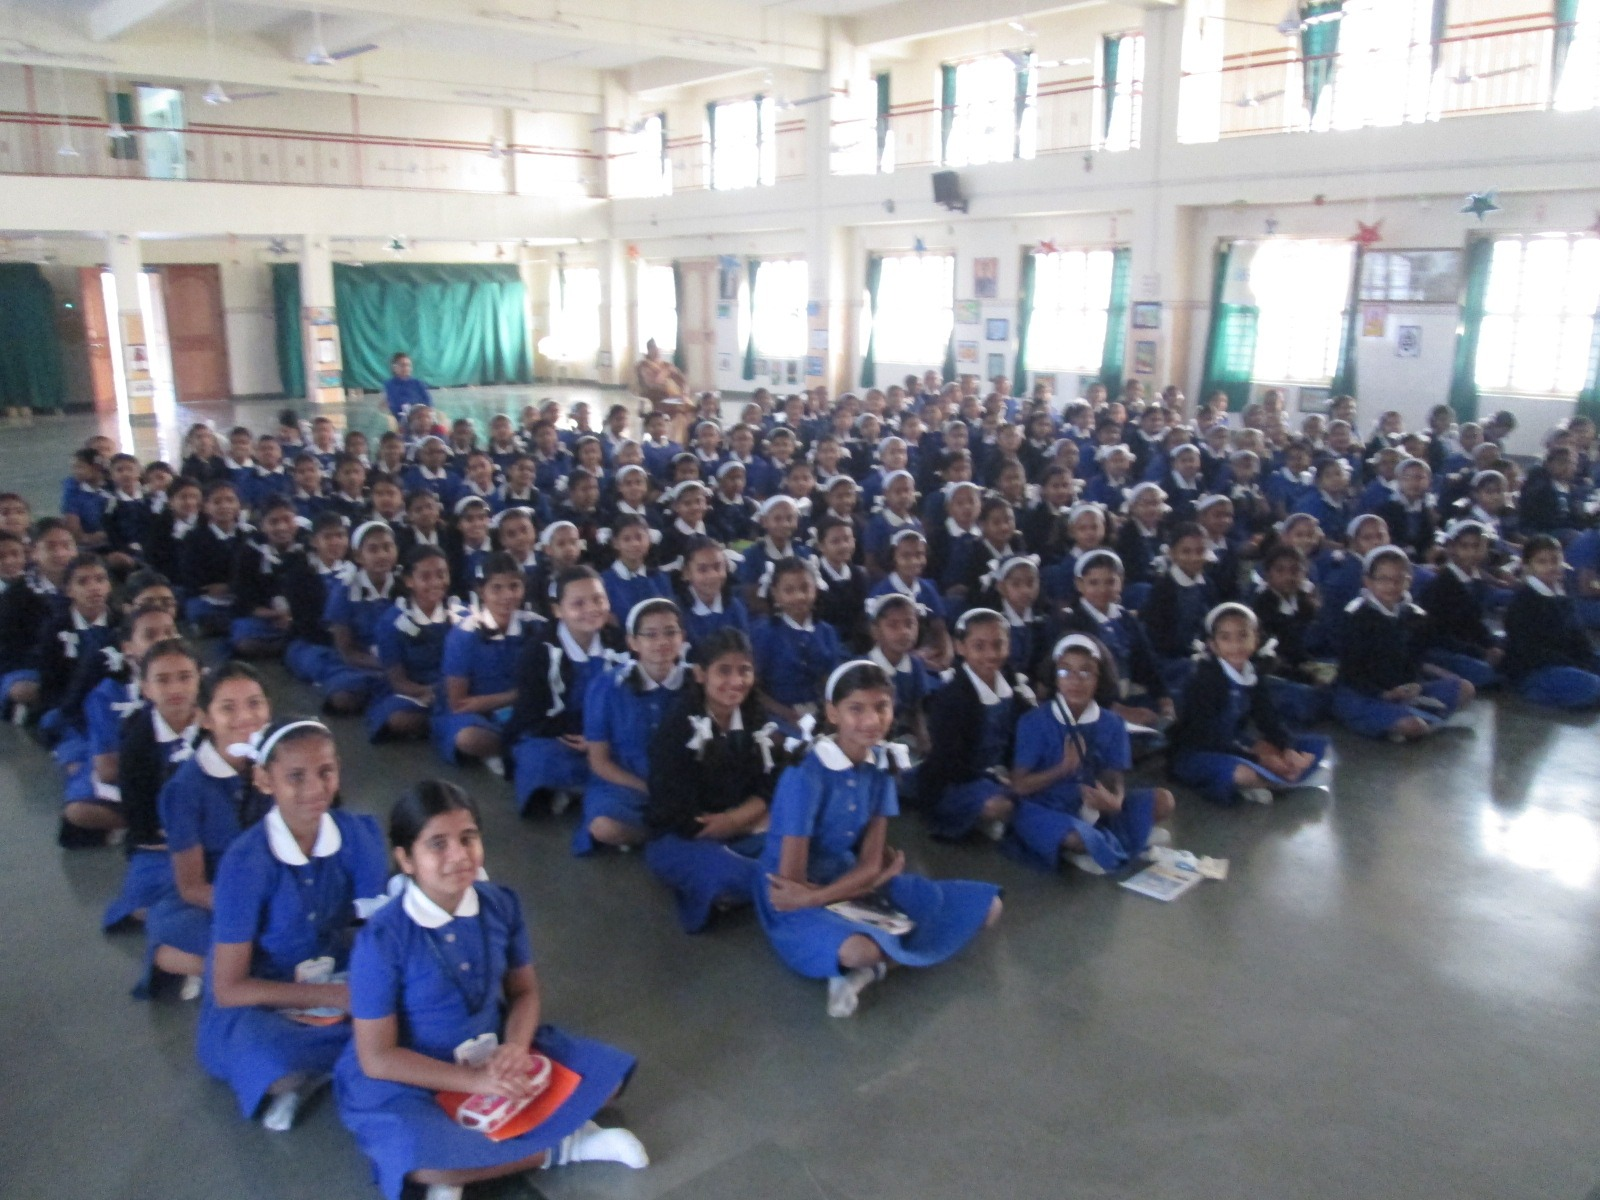 At a school in Vasai in India